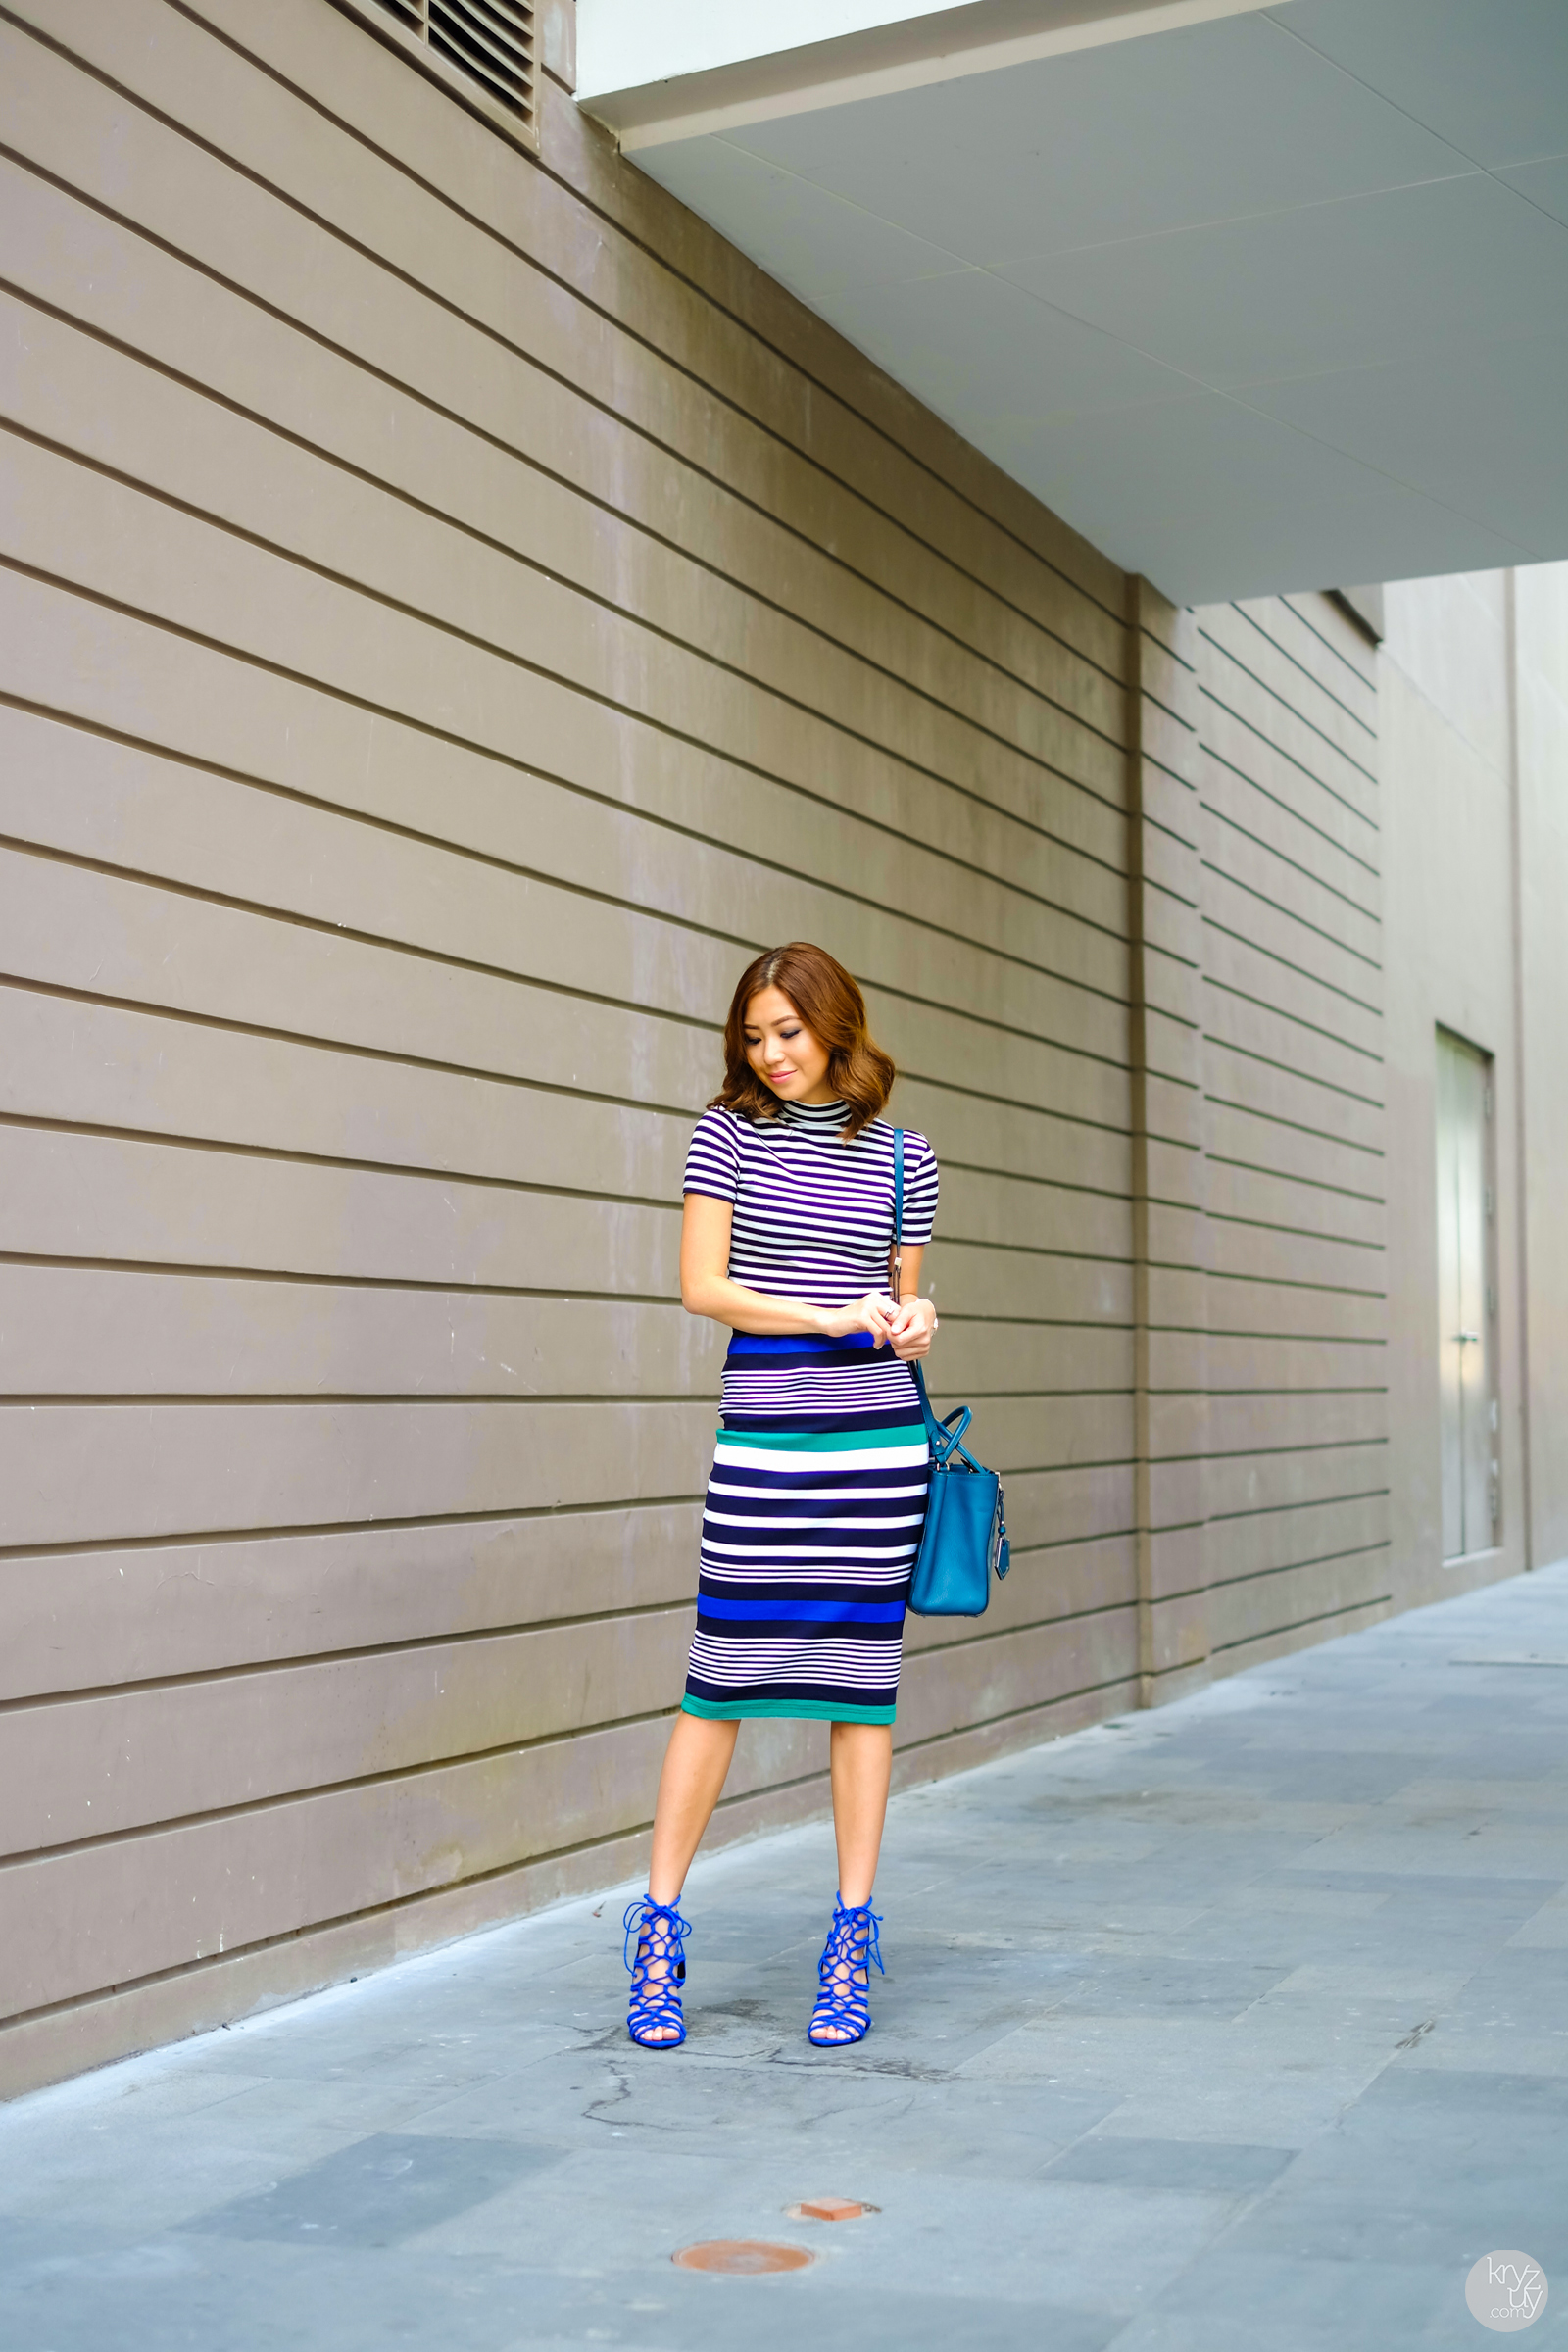 Stripped Outfit Ideas: Kryz Uy outfit consists of a Romwe turtleneck top with a body con mid length Gu Japan skirt